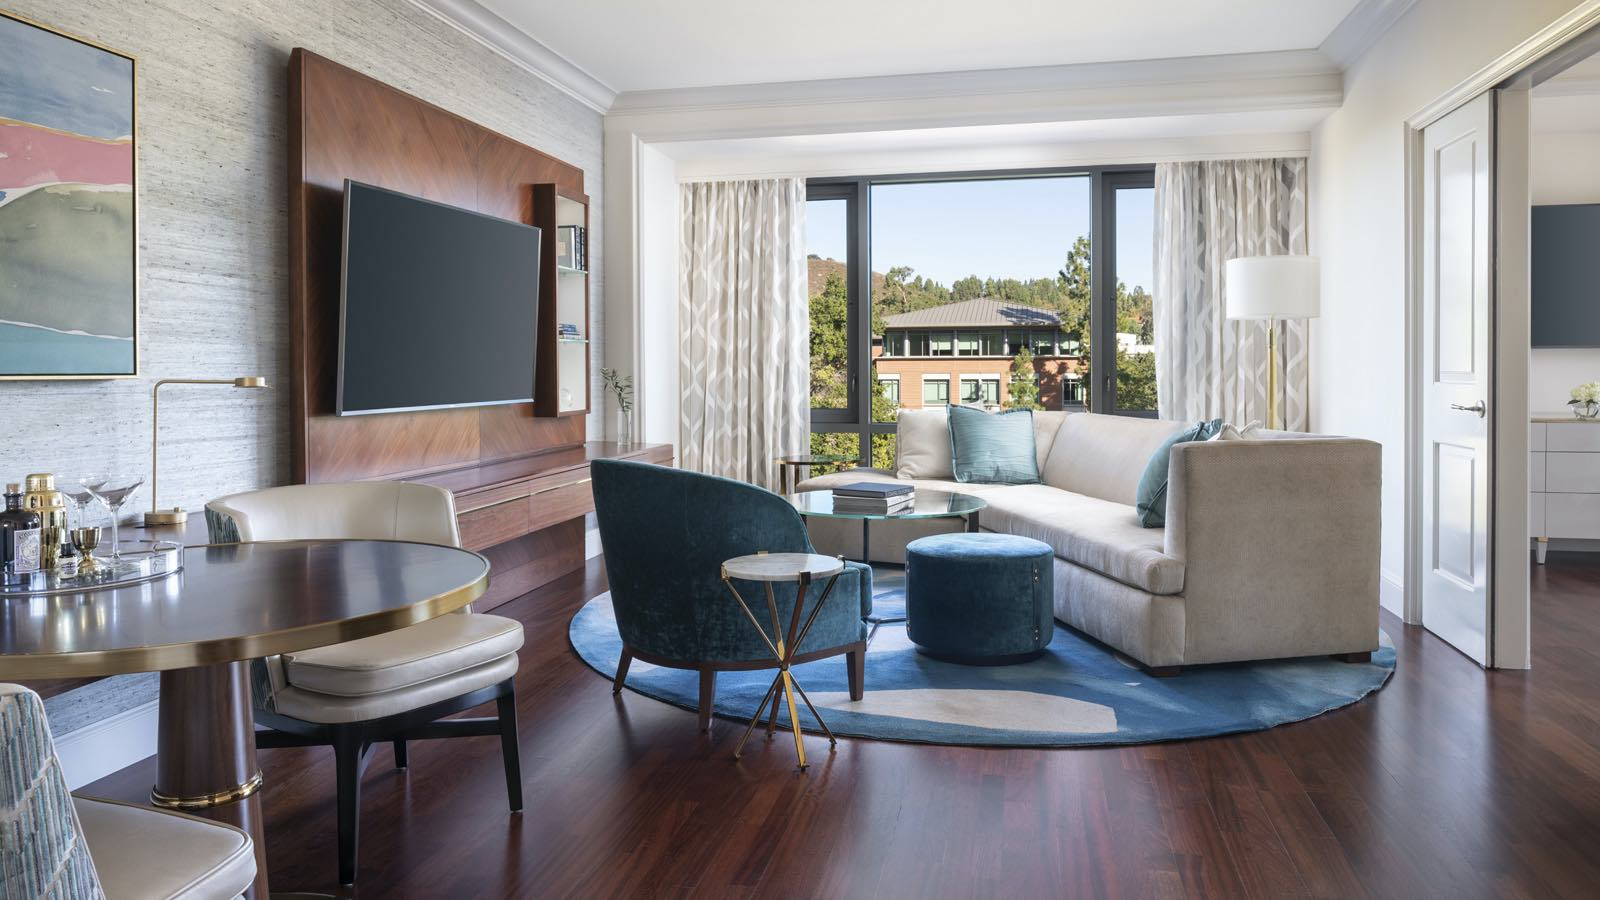 Four Seasons Westlake Village suite with view over gardens